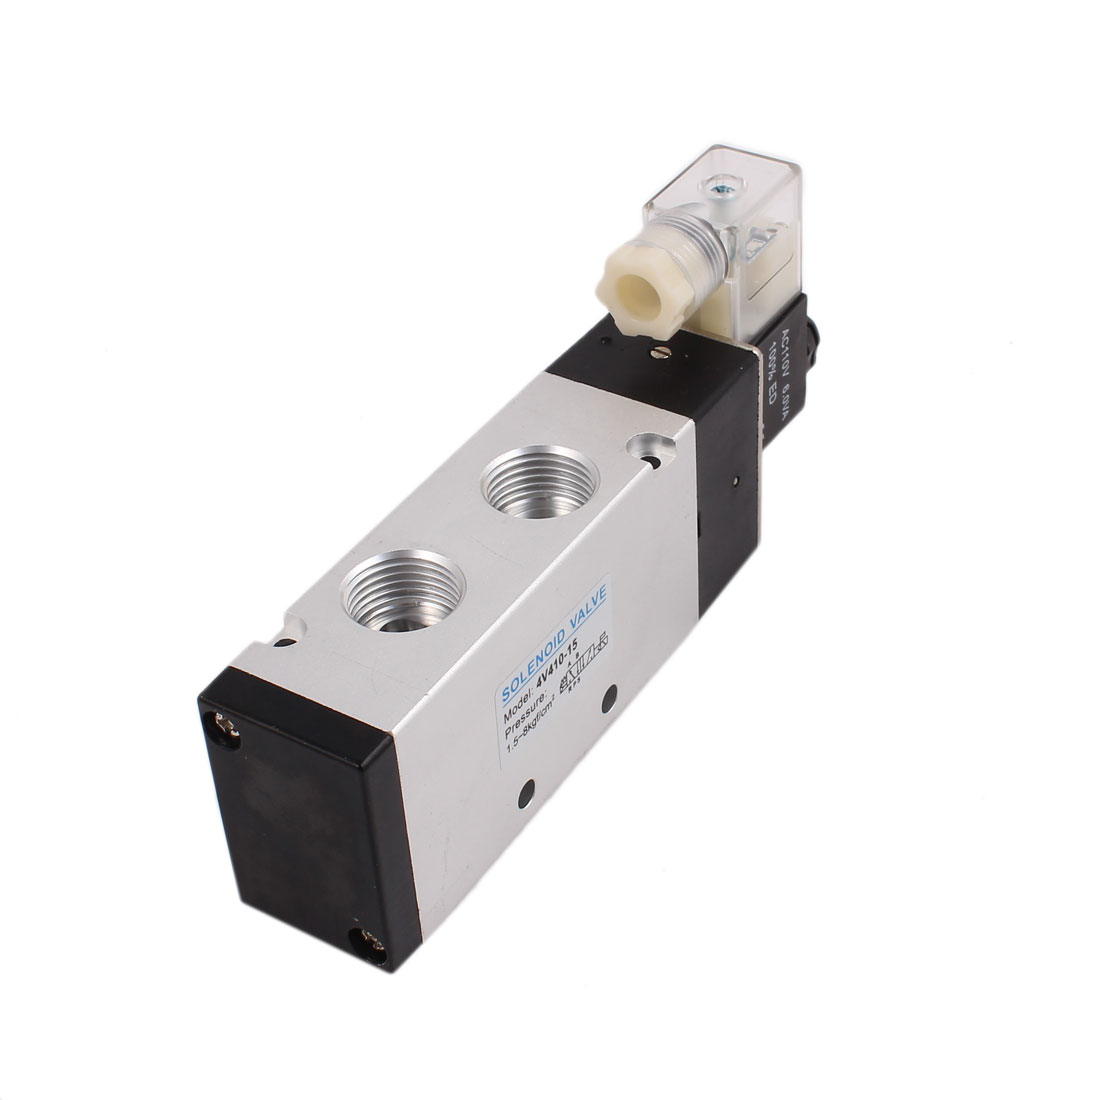 AC 110V 2 Position 5 Way Neutral Electric Pneumatic Solenoid Valve 4V410-15